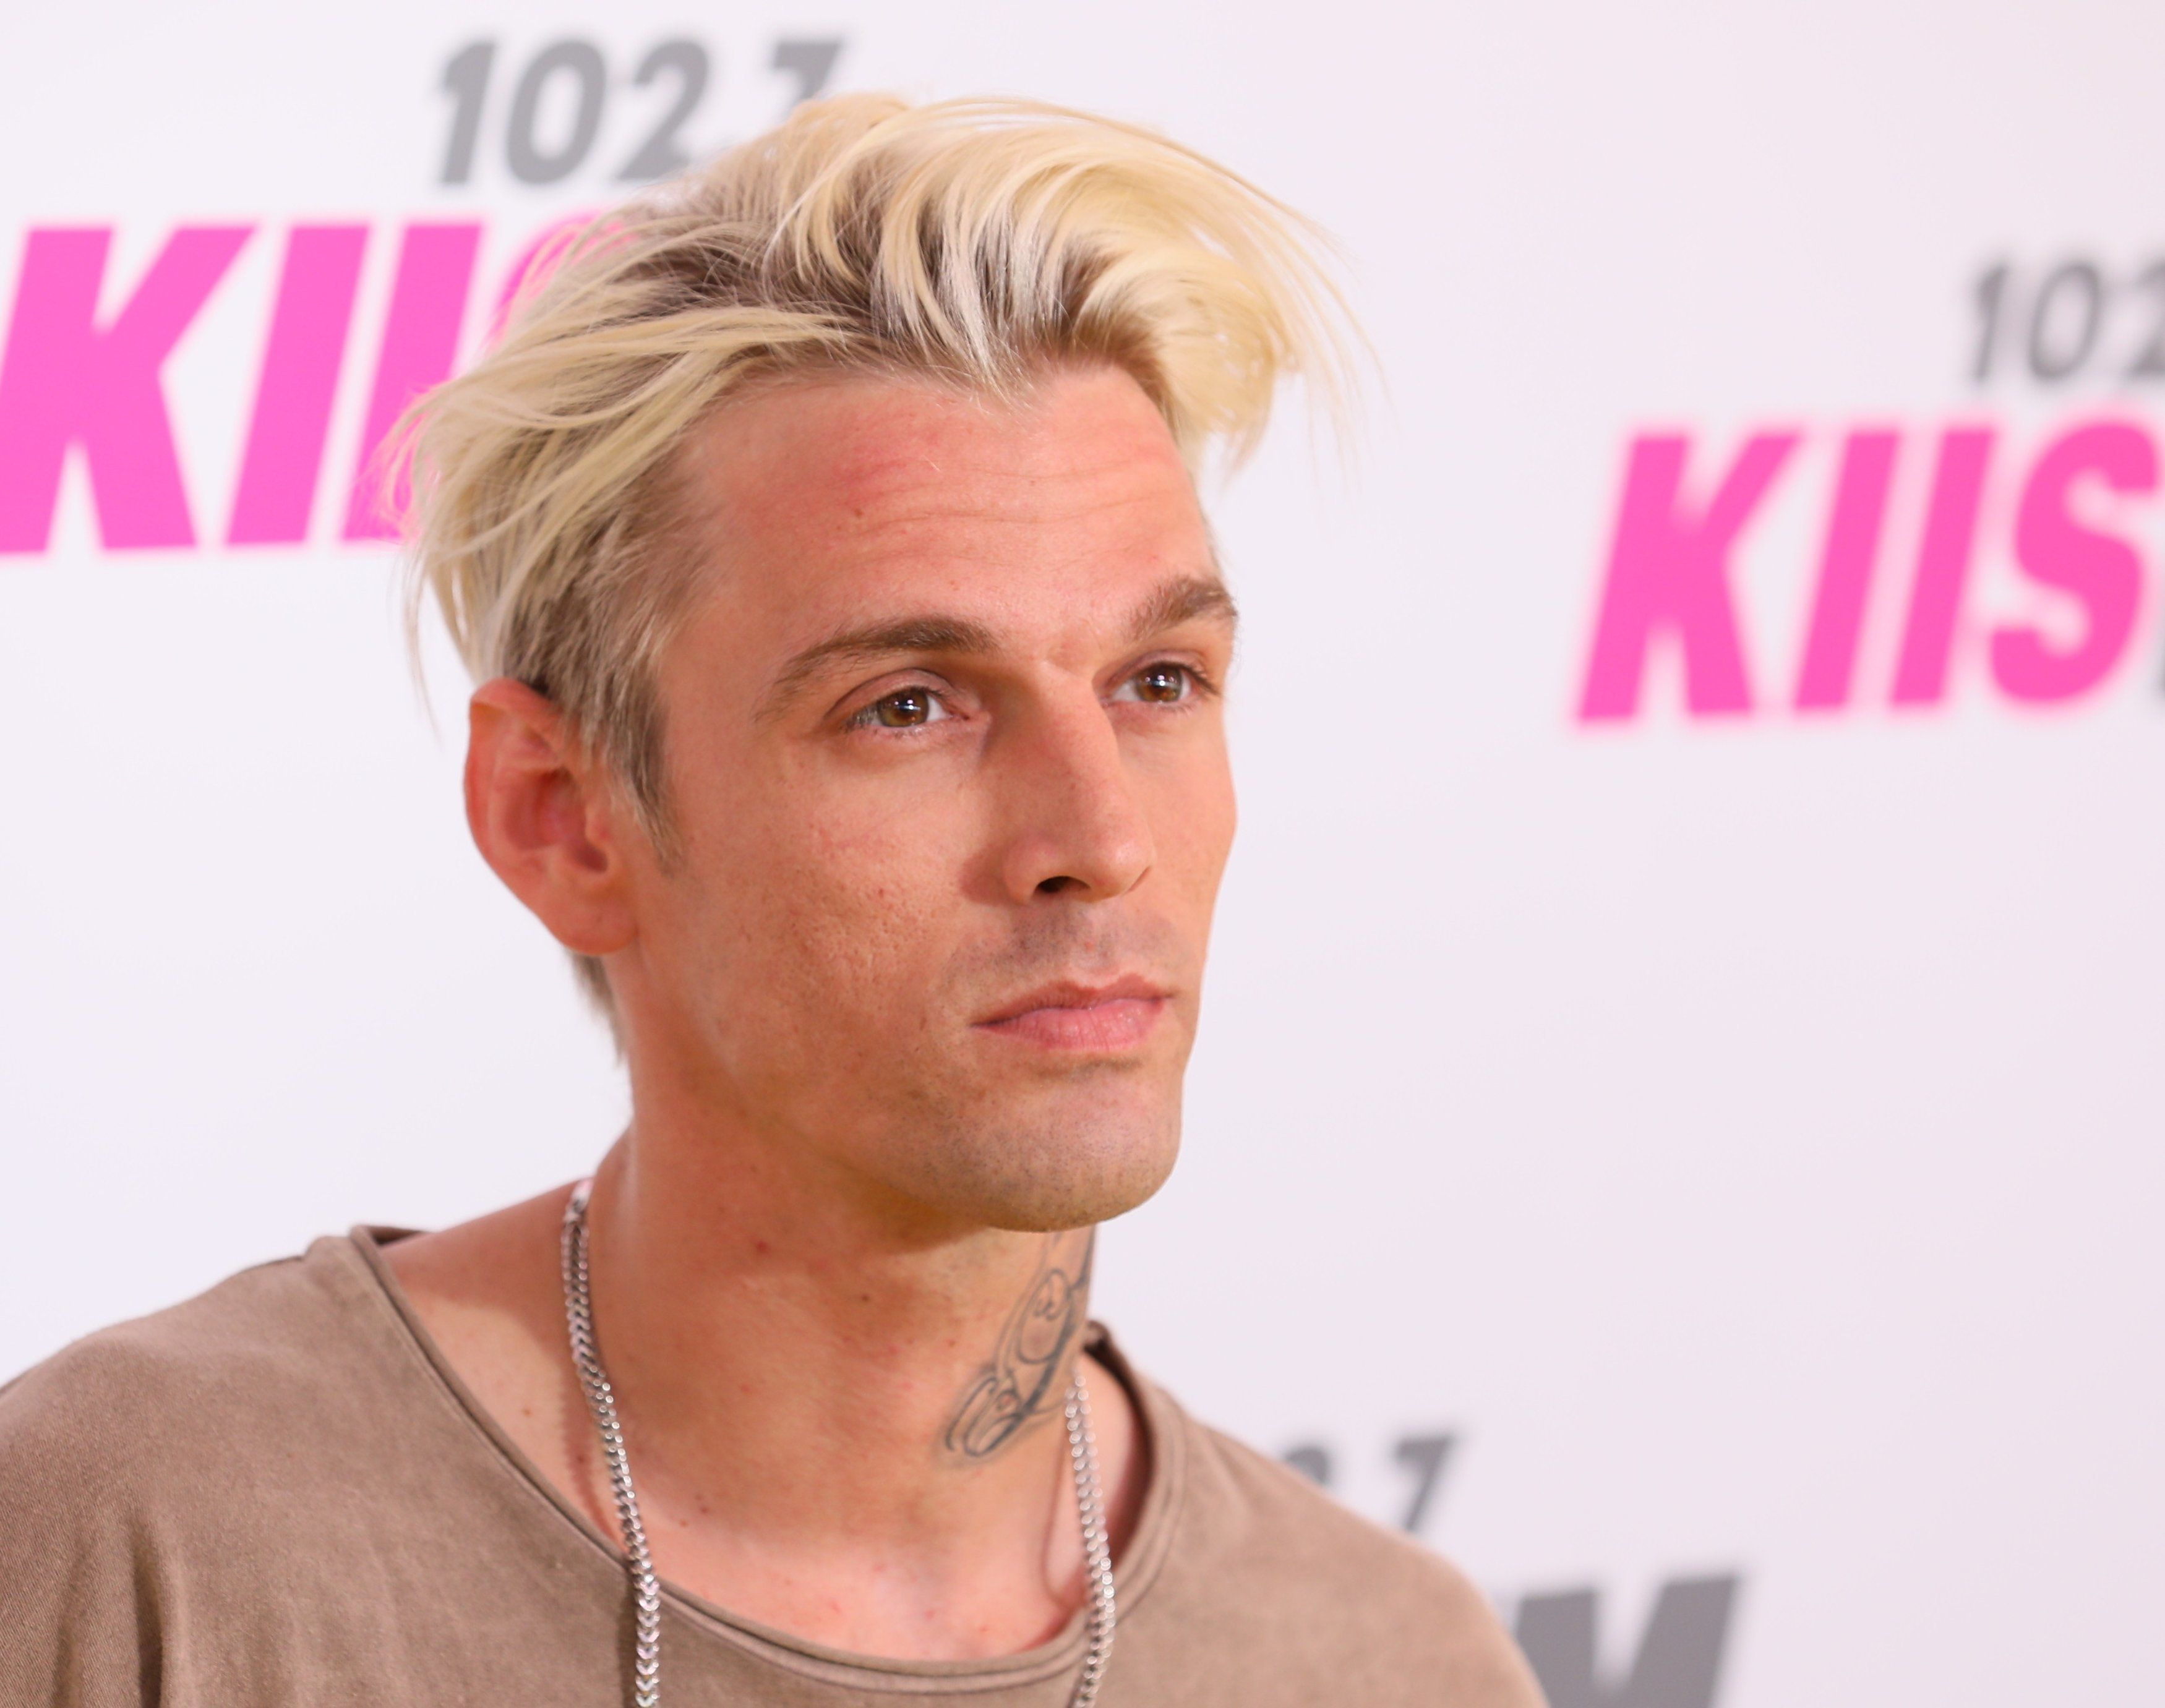 CARSON, CA - MAY 13: Aaron Carter attends the 102.7 KIIS FM's 2017 Wango Tango on May 13, 2017 in Carson, California. (Photo by JB Lacroix/WireImage)